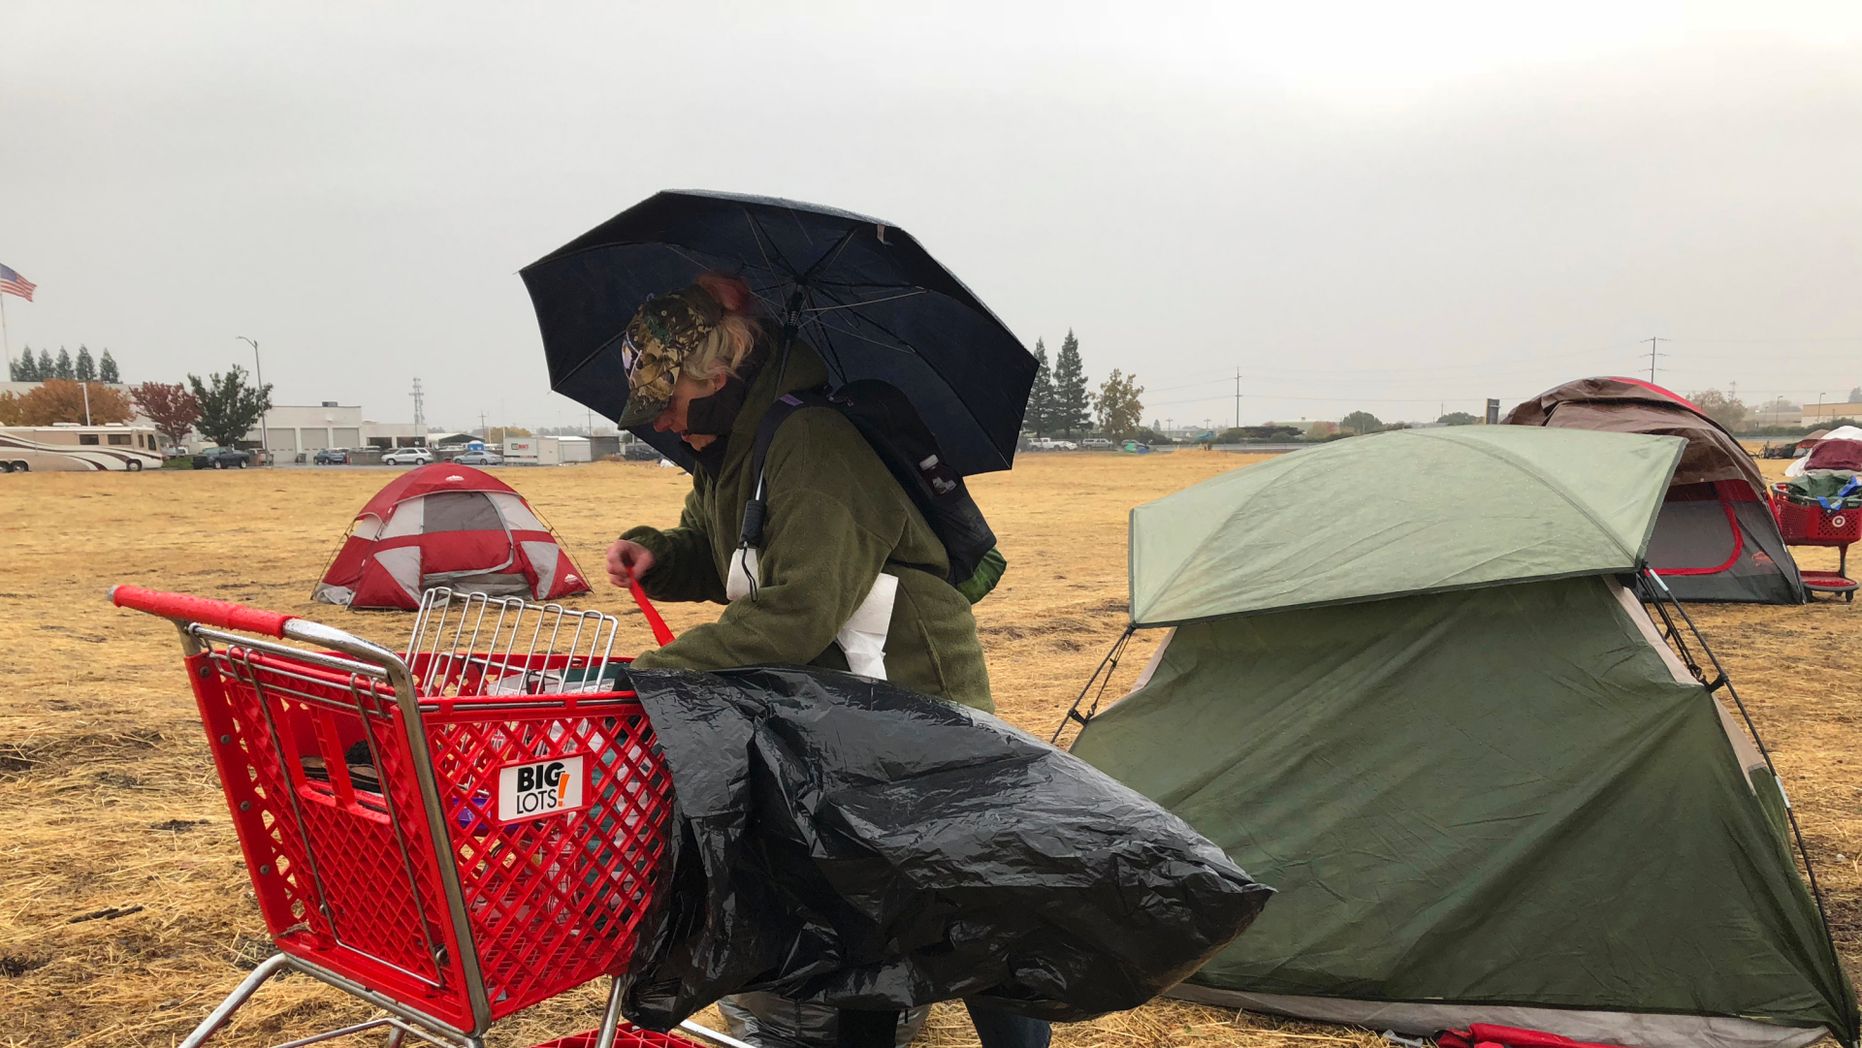 Amy Sheppard packs up items outside her tent in a Walmart parking lot in Chico, Calif., that's been a makeshift campground for people displaced by wildfire, Wednesday morning, Nov. 21, 2018. Sheppard lost her home in Magalia to the Camp fire. She was staying in the tent for four days with her sister and 1-year-old niece. They are moving to a motel because of rain that began Wednesday. (AP Photo/Kathleen Ronayne)